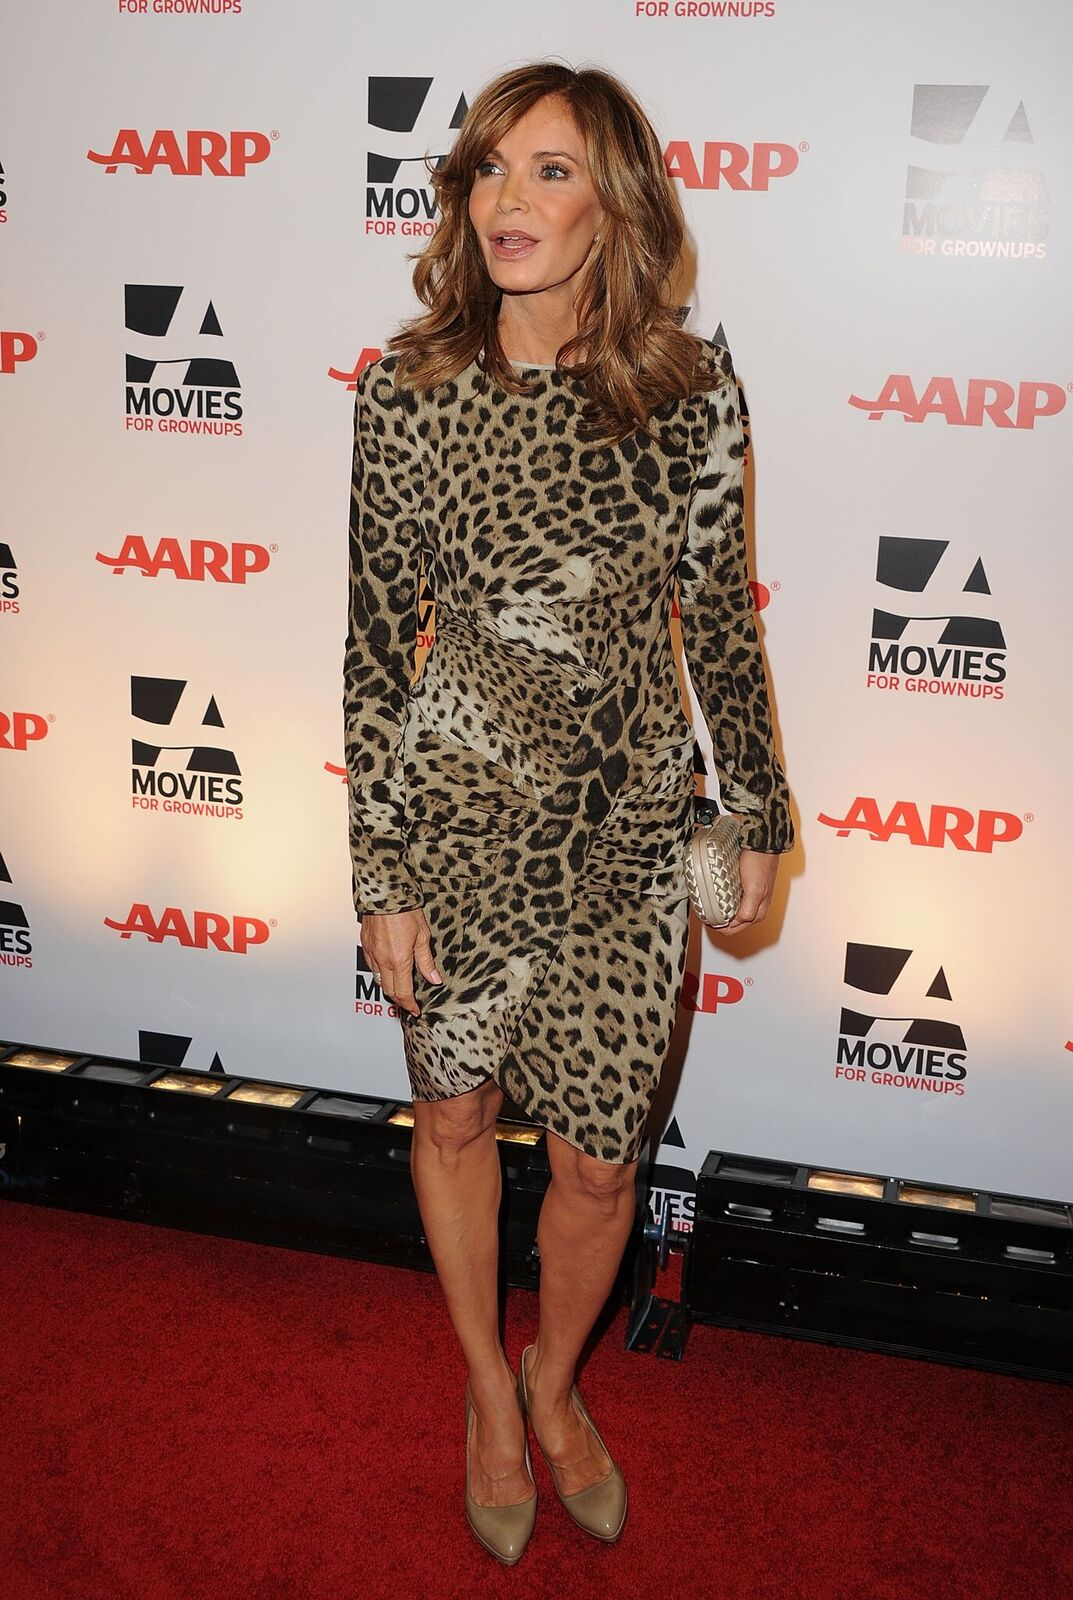 Actress Jaclyn Smith arrives at the AARP Magazine's 10th Annual Movies For Grownups Awards at the Beverly Wilshire Four Seasons Hotel on February 7, 2011 in Beverly Hills, California | Photo: Getty Images